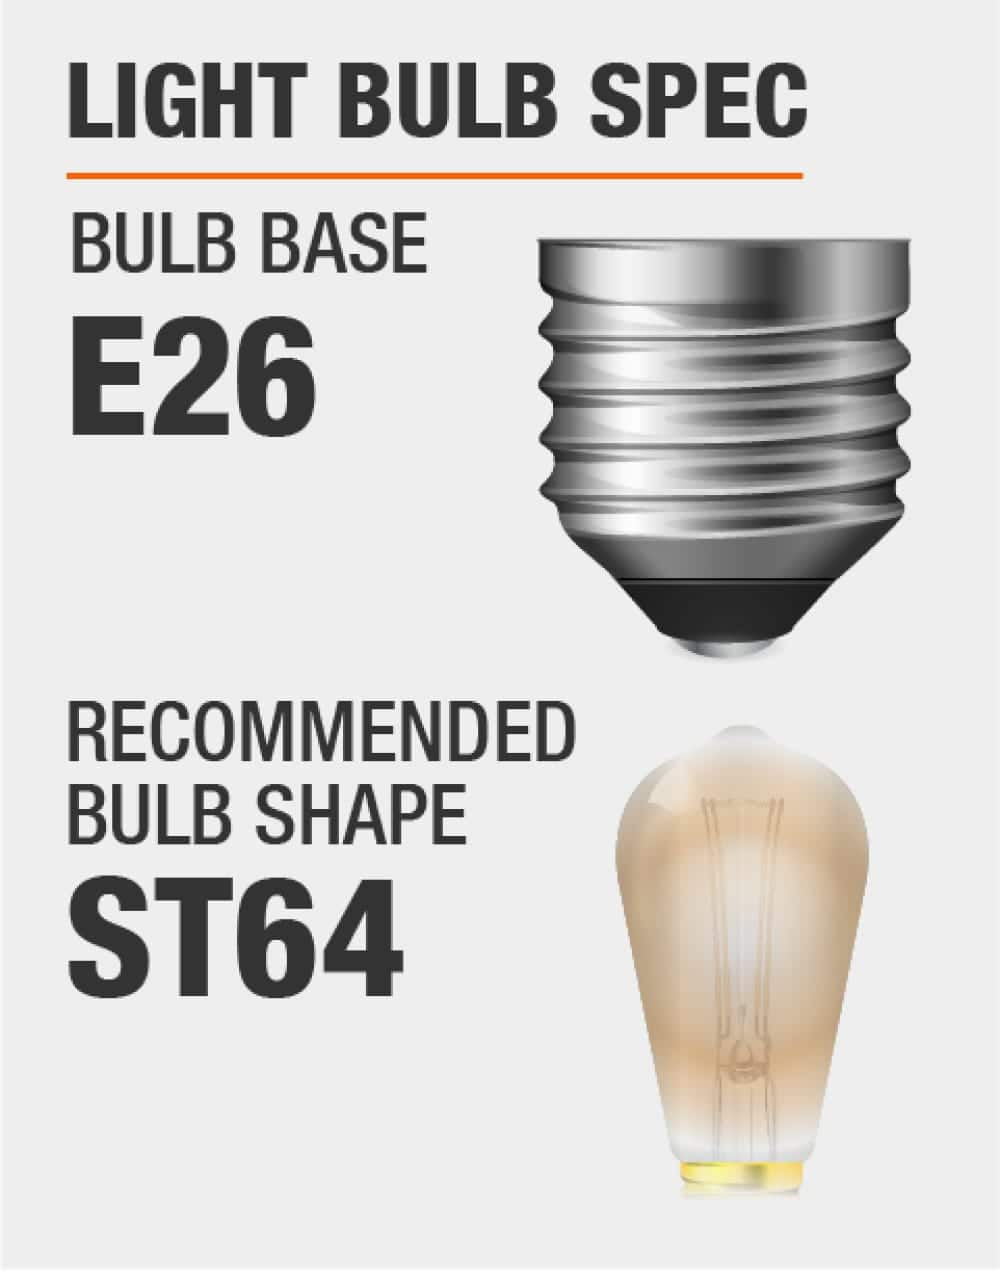 this fixture fits bulbs with E26 base and recommended bulb shape is ST64